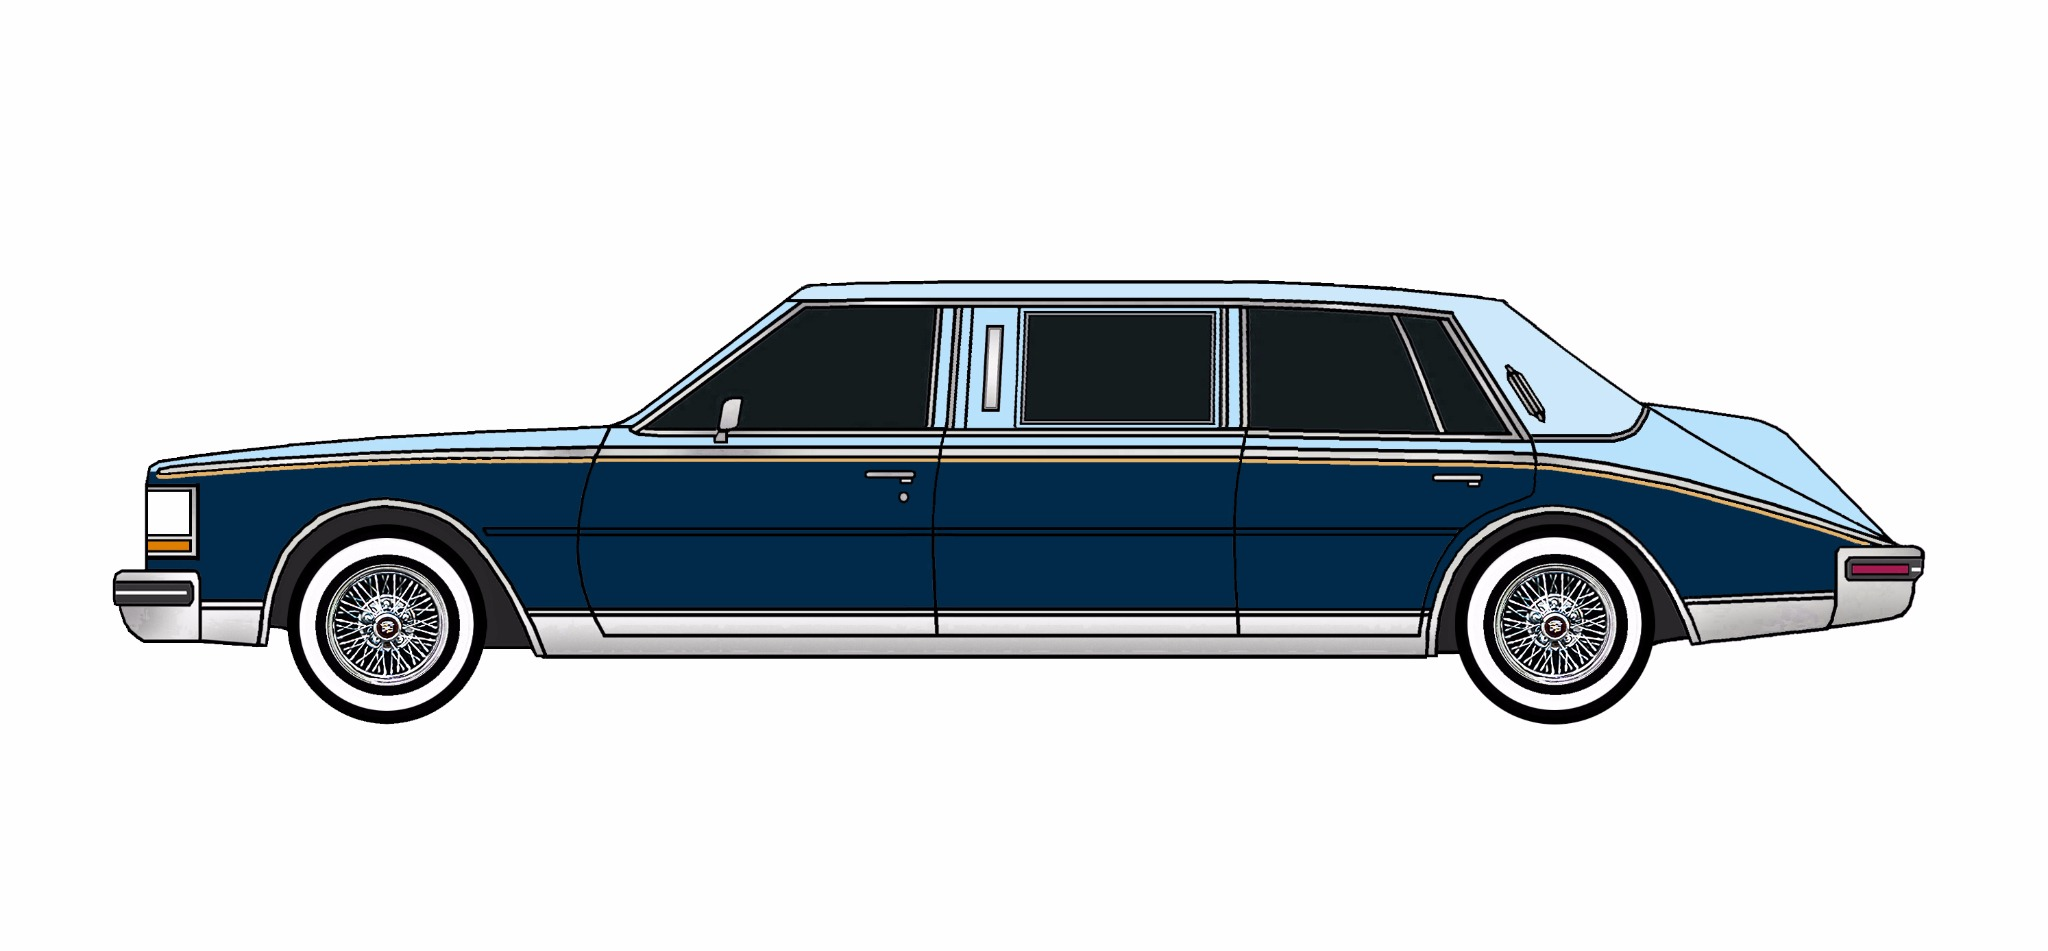 1985 Cadillac Seville Limo PALE BLUE & MIDNIGHT BLUE